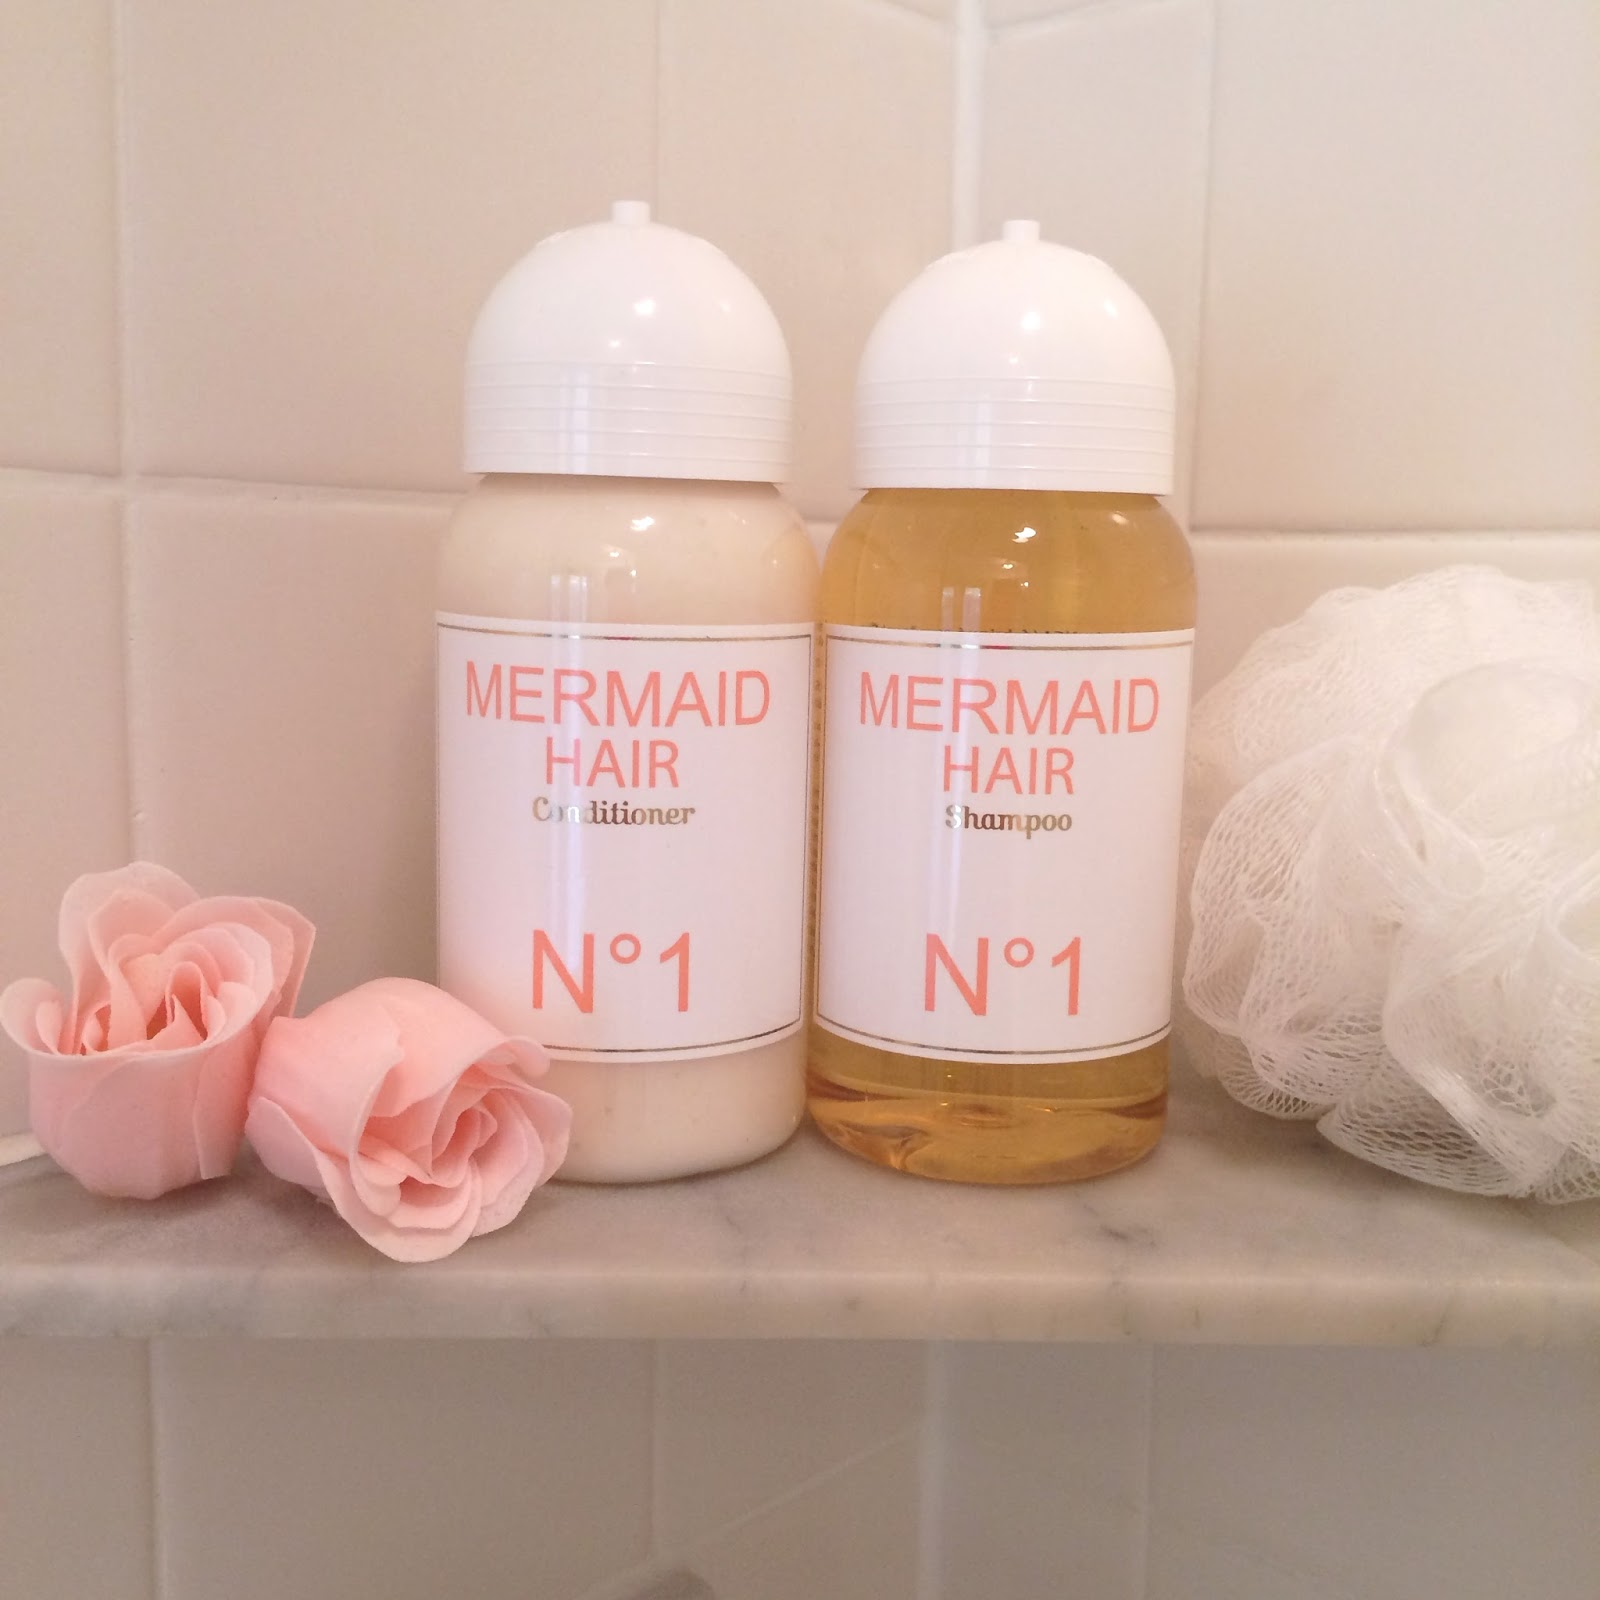 Best hair products of all time!